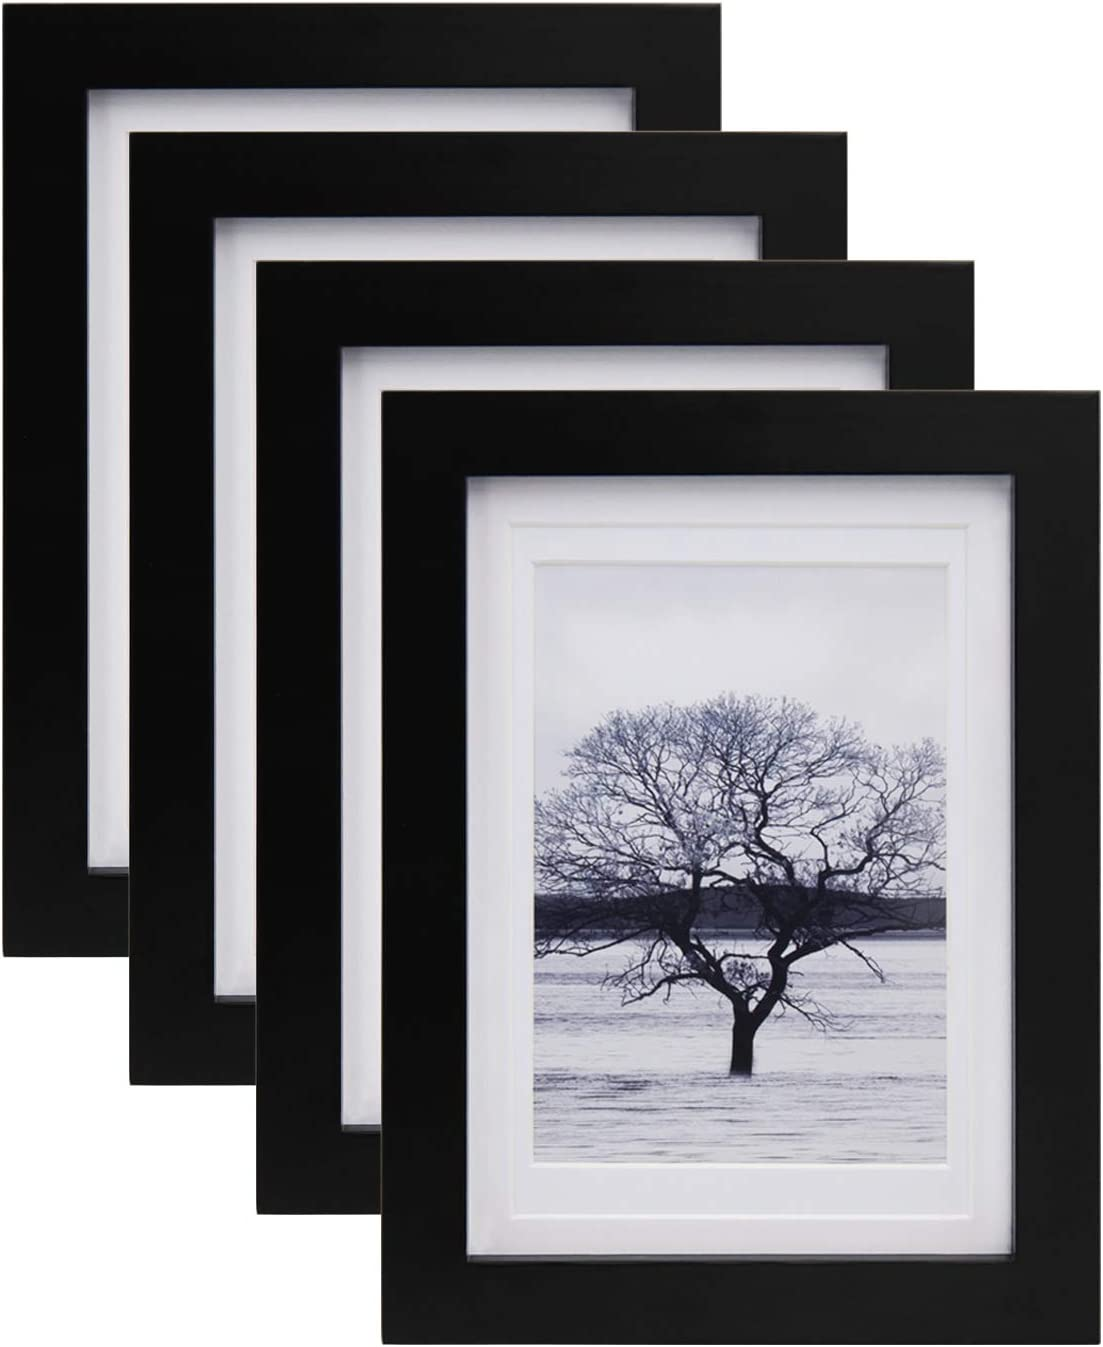 Fashionable Egofine 5x7 Max 88% OFF Picture Frames 4 PCS - of Made for Wood Matted Solid